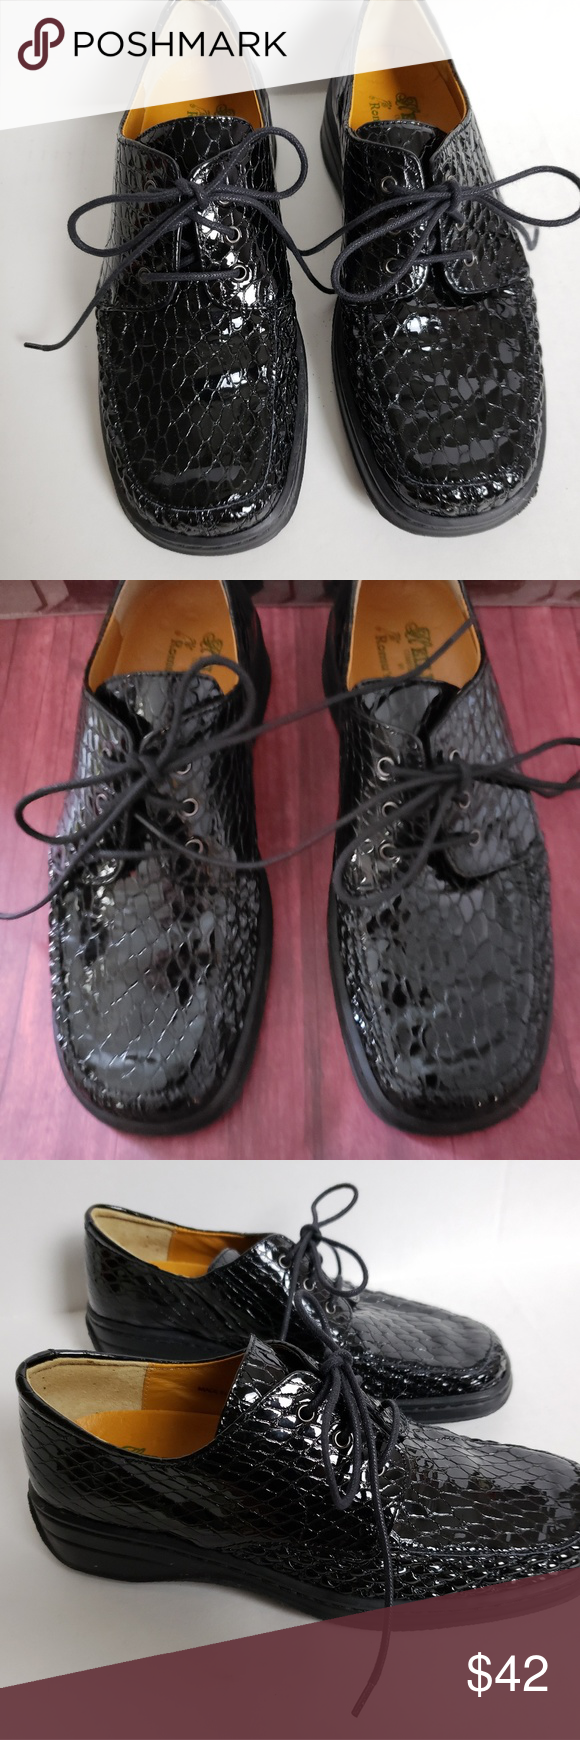 23f3ef33a Helle s Black Patent Comfort Shoes by Romu s Black Patent Snakeskin Comfort  Shoe. These are like new and look like they haven t been worn.